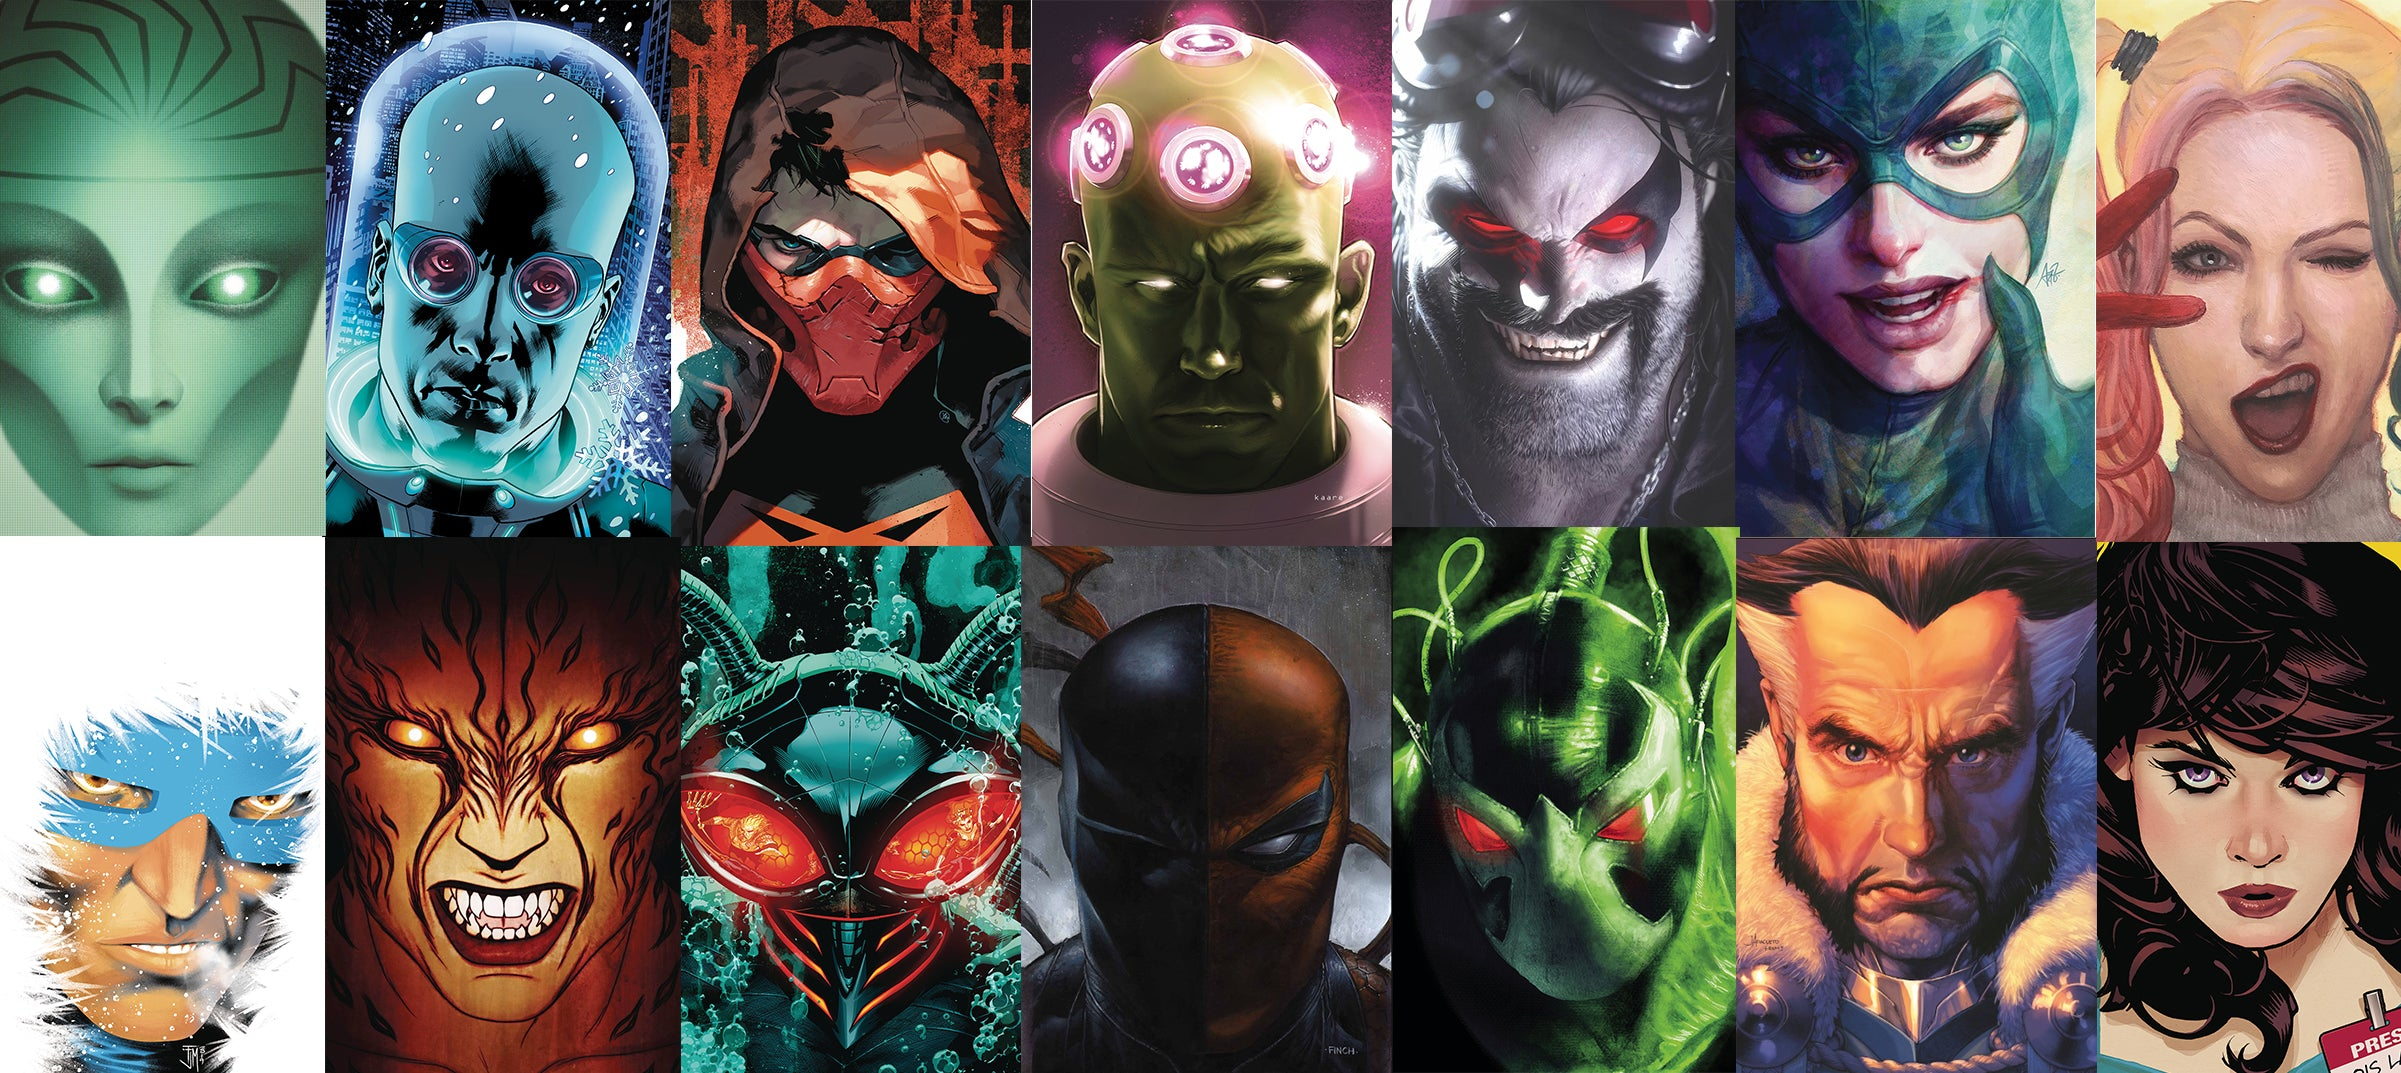 YEAR OF THE VILLAIN PORTRAIT VARIANT COVERS